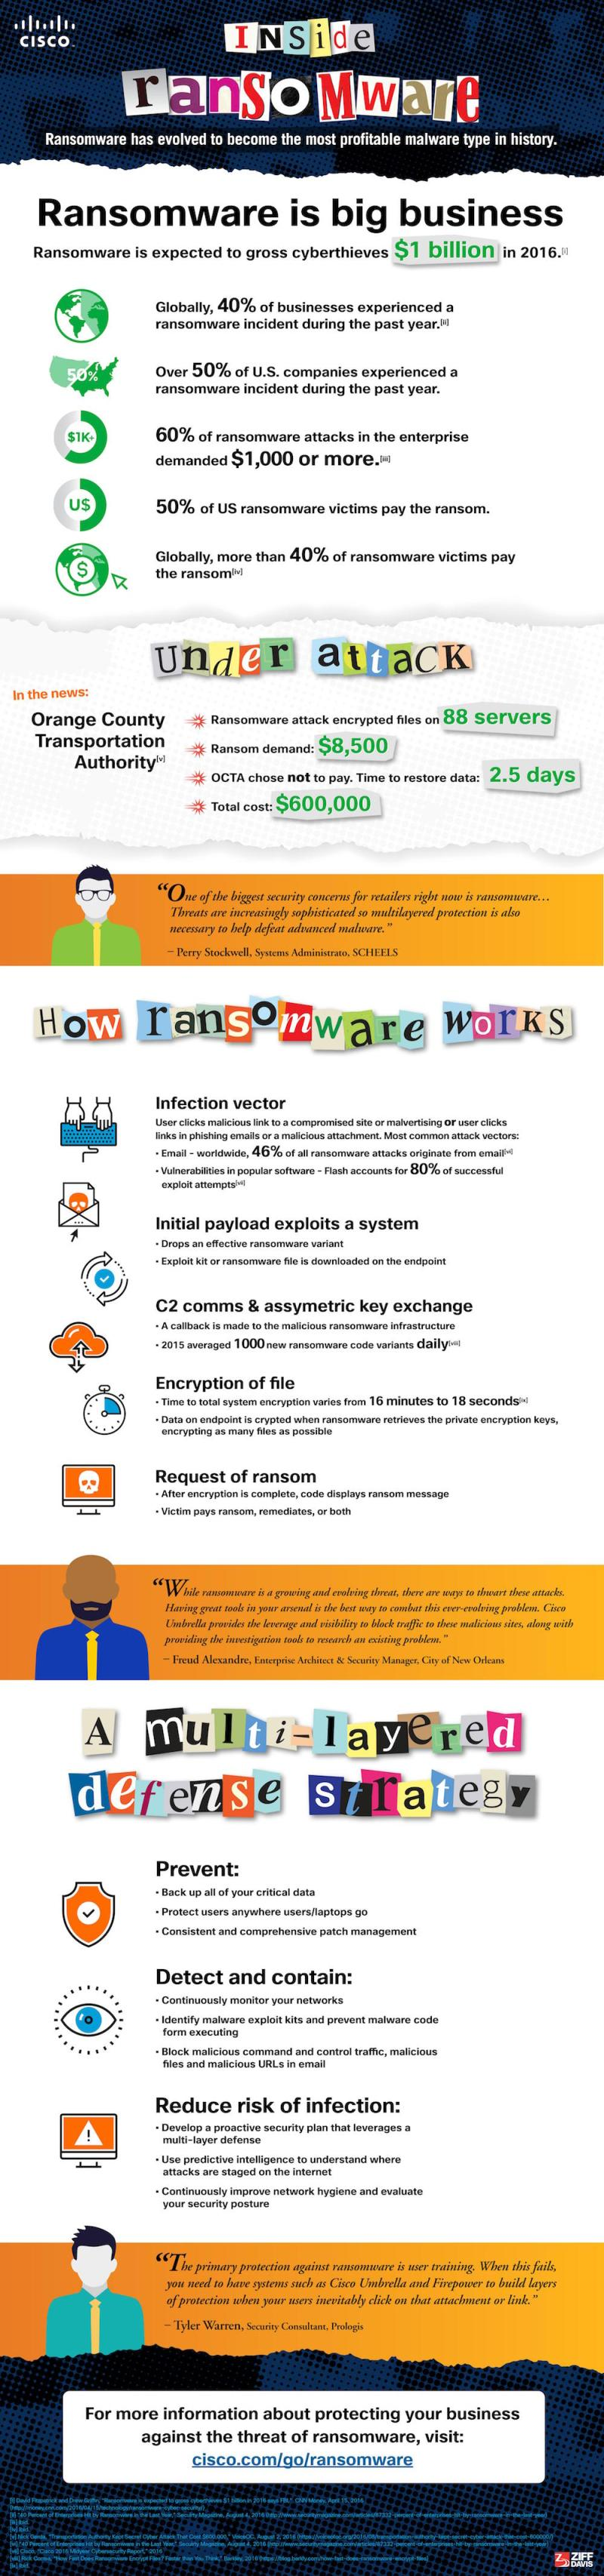 cisco-infographic-inside-ransomware